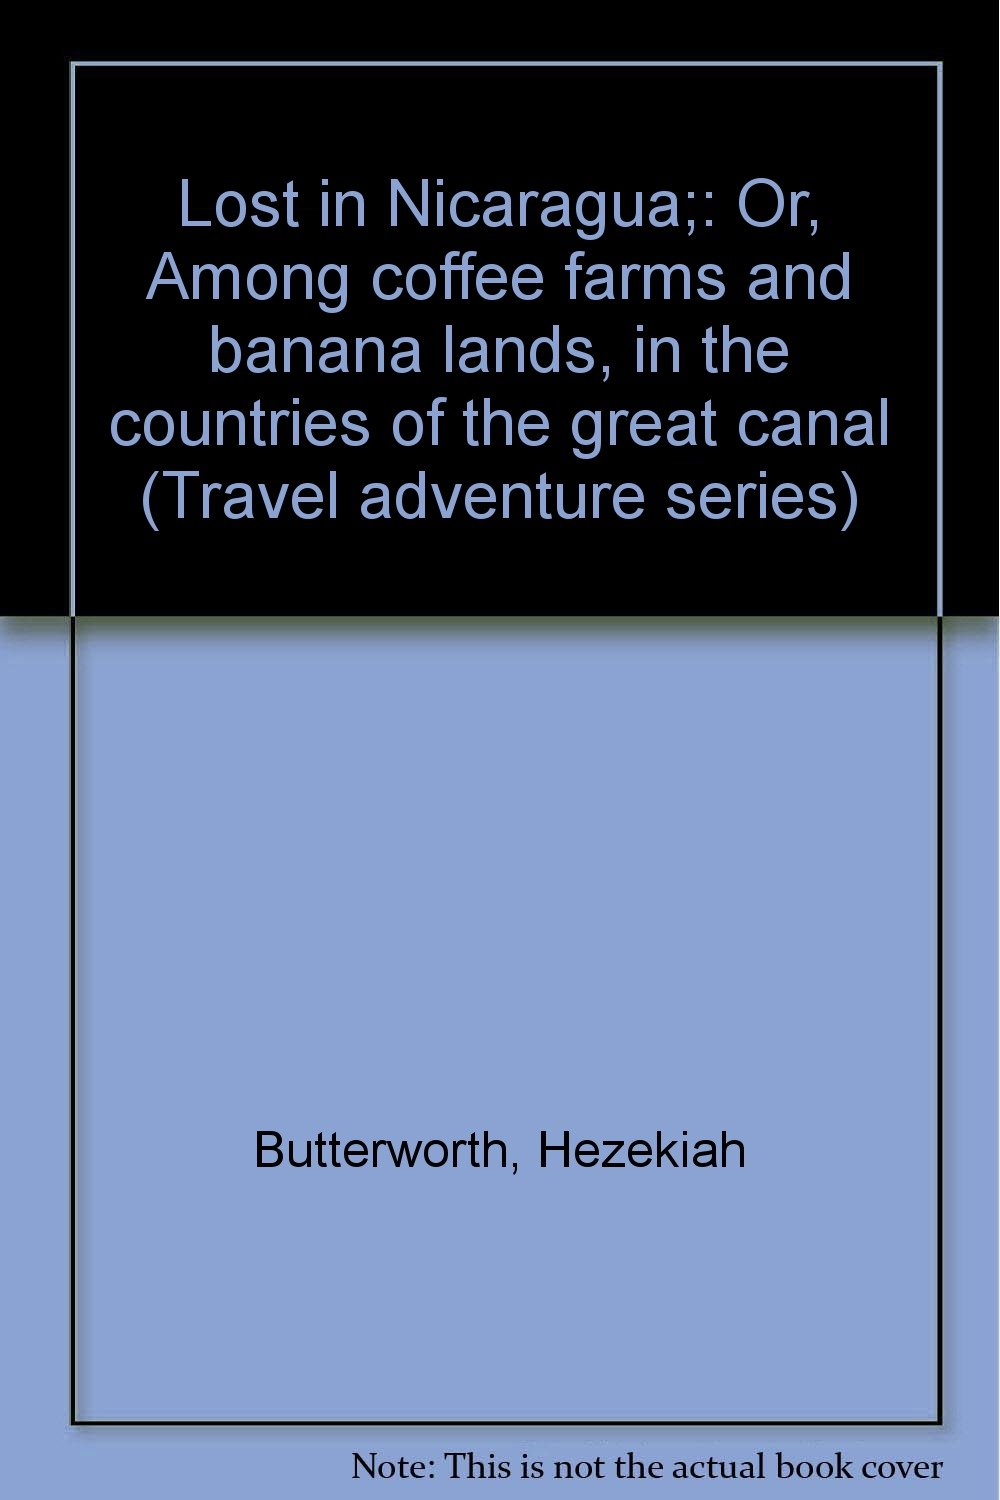 Lost in Nicaragua;: Or, Among coffee farms and banana lands, in the countries of the great canal (Travel adventure series)